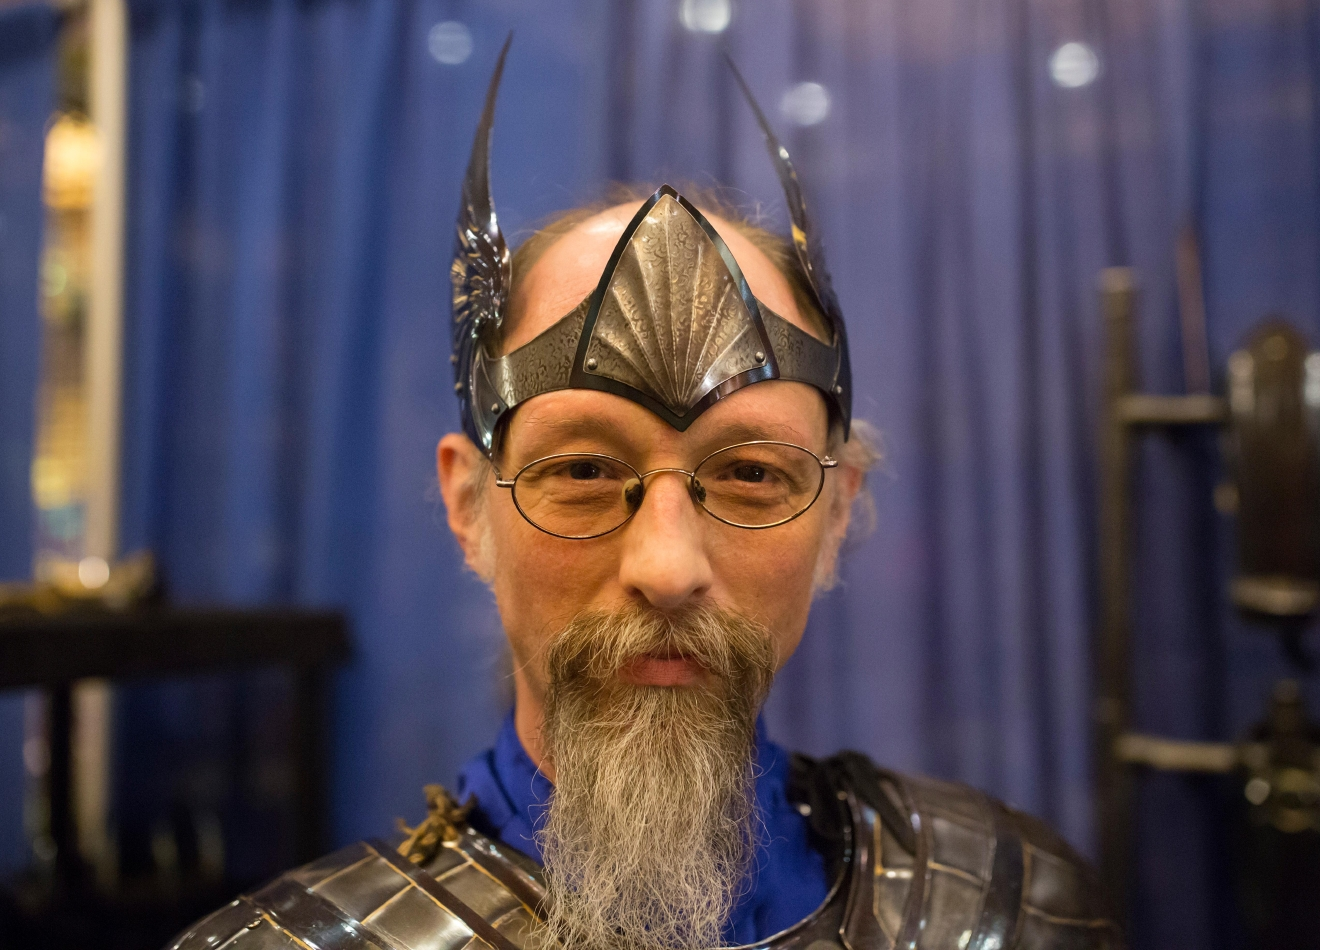 Aaron Parker of Sinister Metal Works tries on his most popular handmade crown that he crafts out of 20 gauge metal at Mythicworlds Convention and Masquerades. (Sy Bean / Seattle Refined)